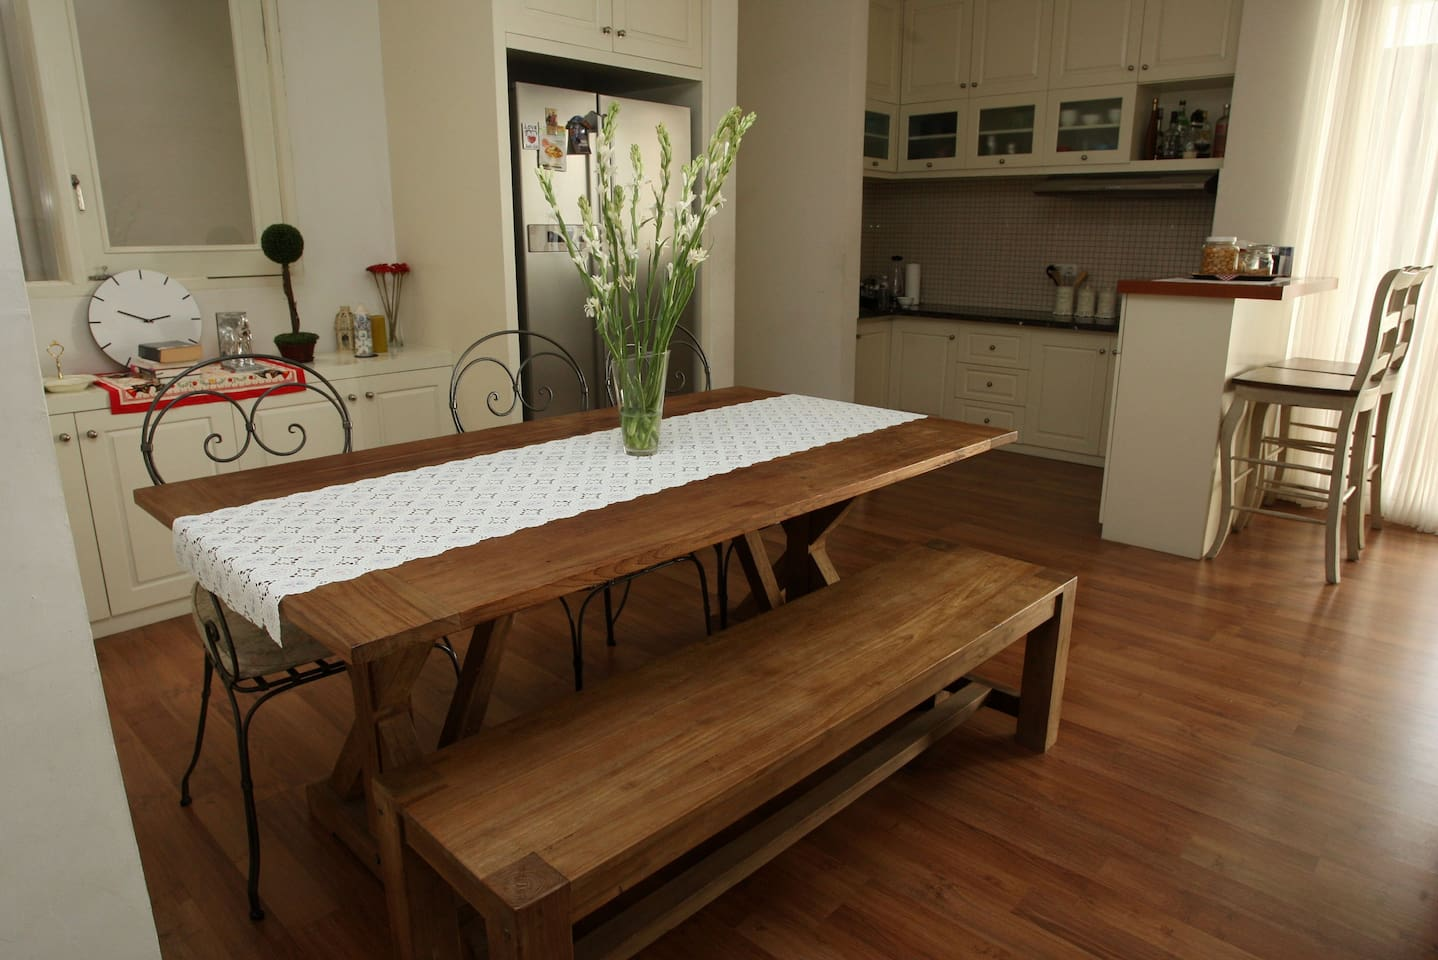 our favourite teak wood dining table. Feel free to share refrigerator and basic equipments on our pantry